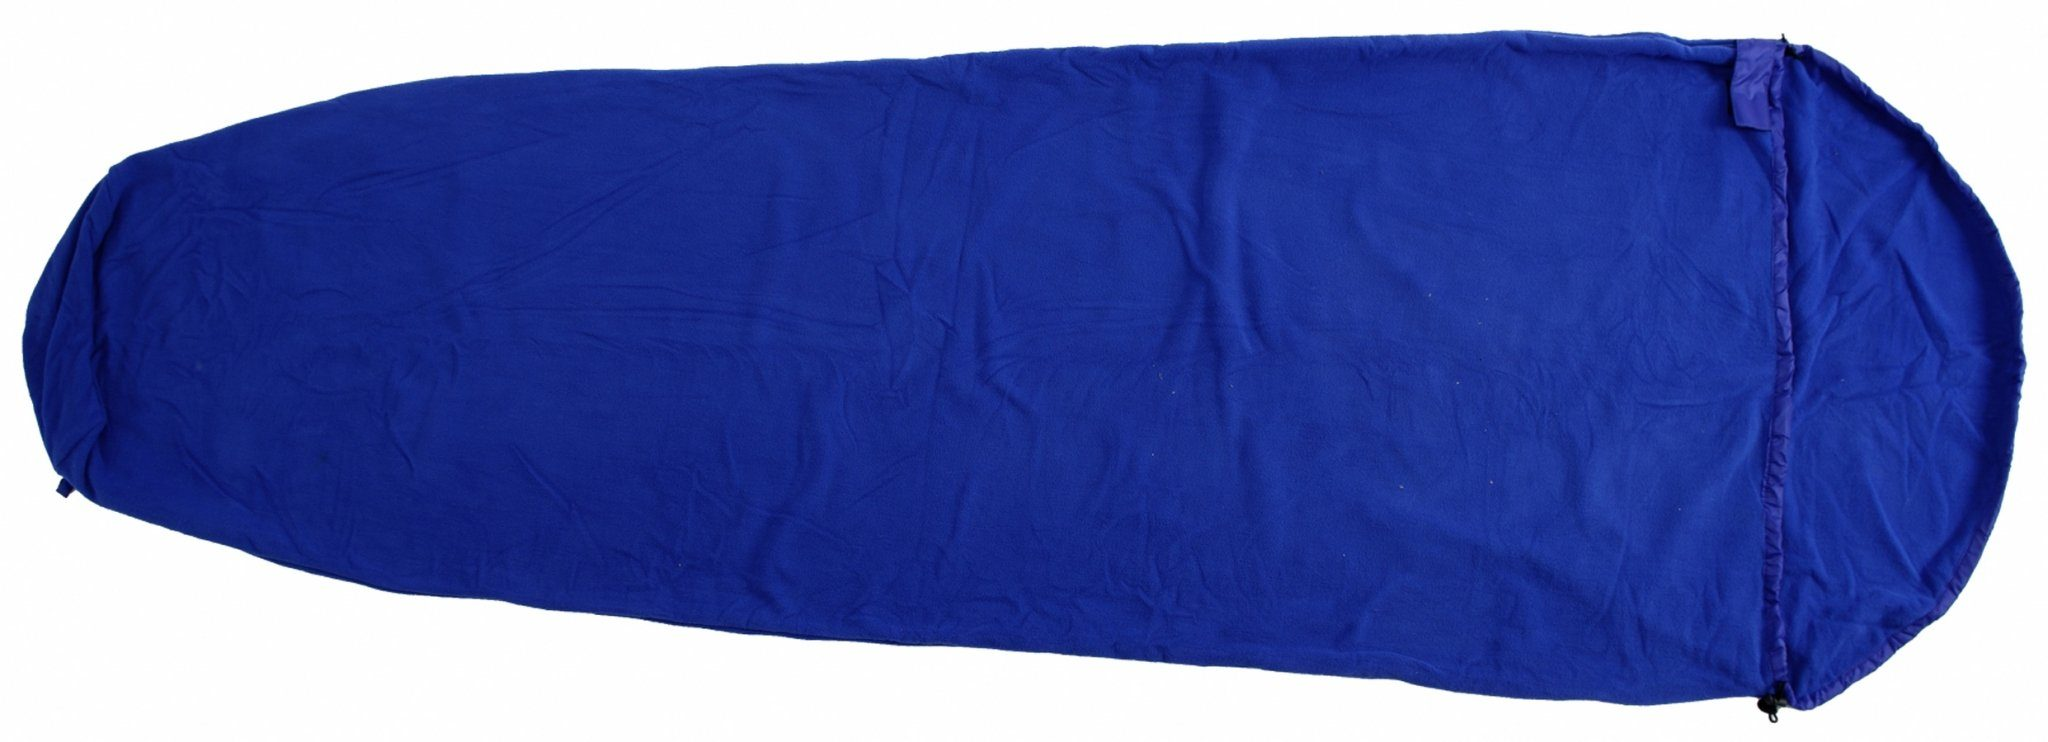 Basic Nature Schlafsack »Fleece Schlafsack royalblau«